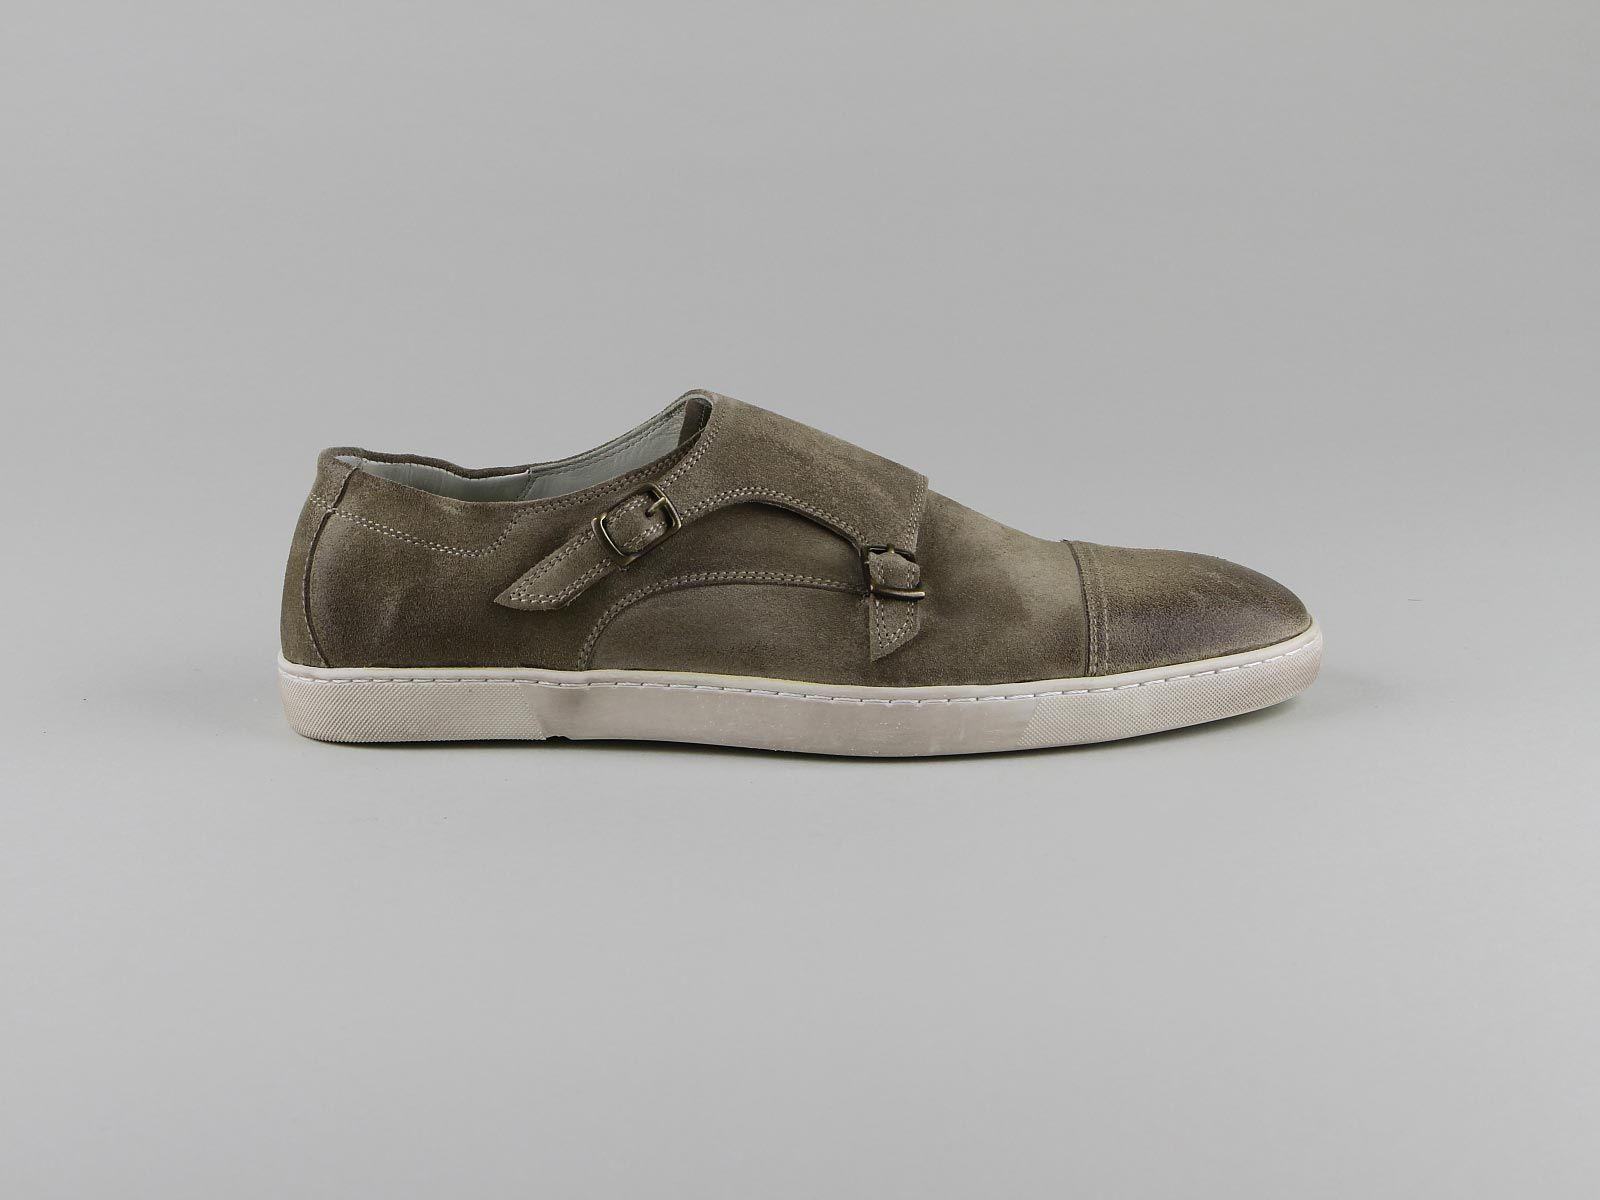 NDC Made by hand ROBERT - Chaussures Homme - Lacets